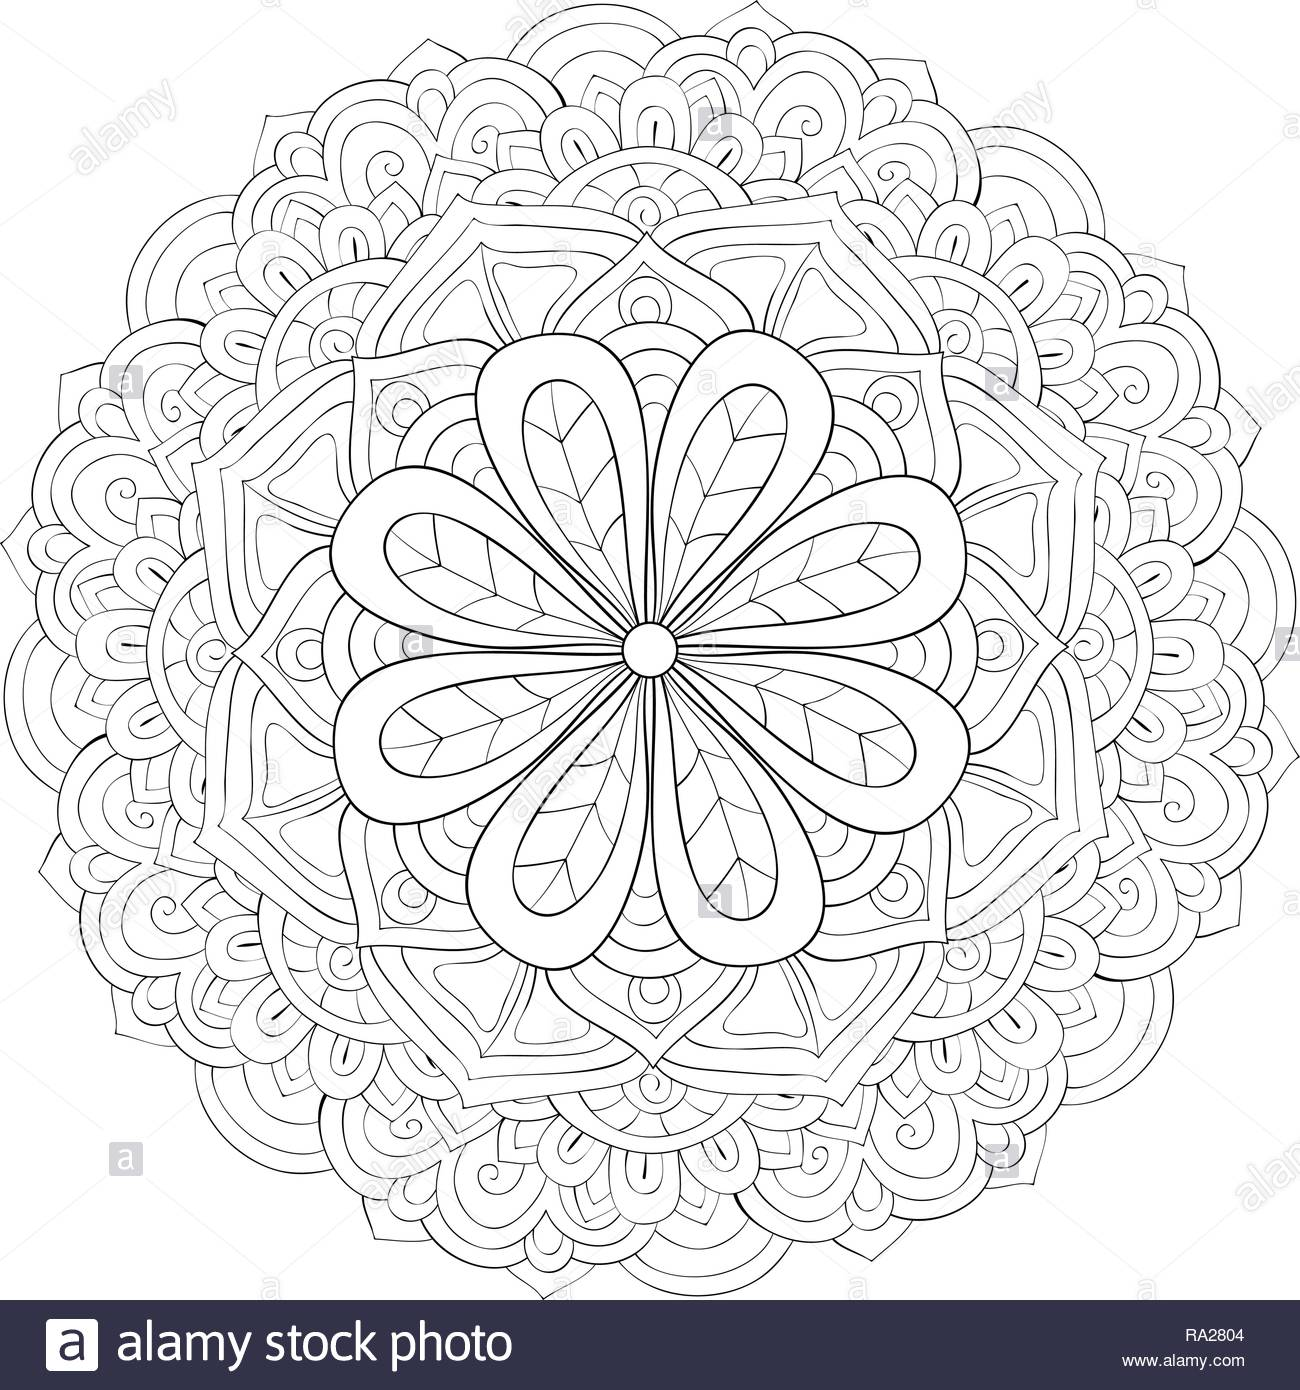 A zen mandala image for adults.A coloring book,page for relaxing ...